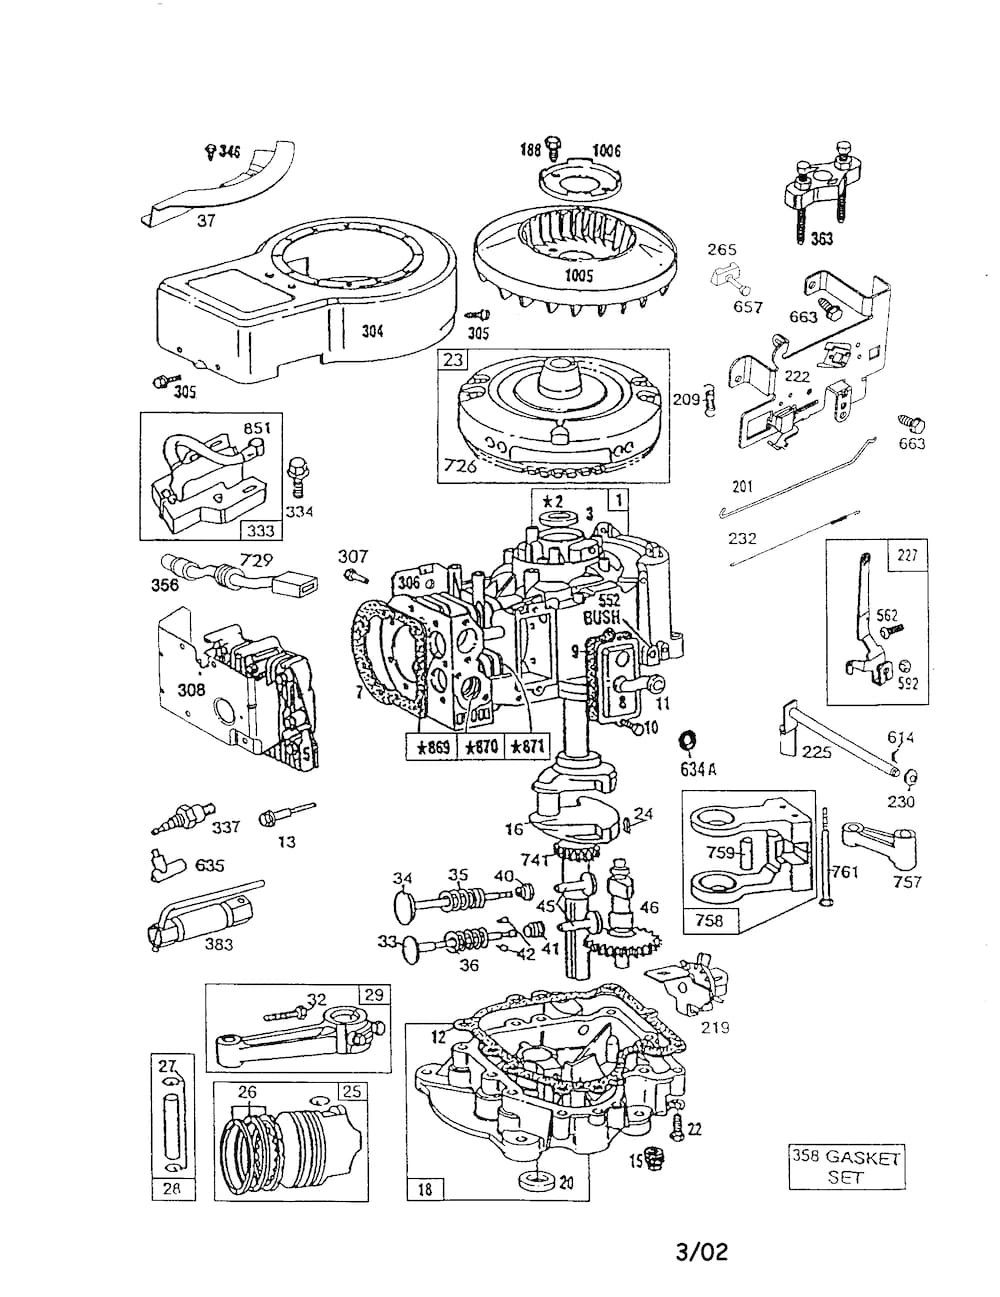 Briggs and Stratton Wiring Diagram 12 Hp Murray 12 5 Hp Briggs and Stratton Wiring Diagram Of Briggs and Stratton Wiring Diagram 12 Hp